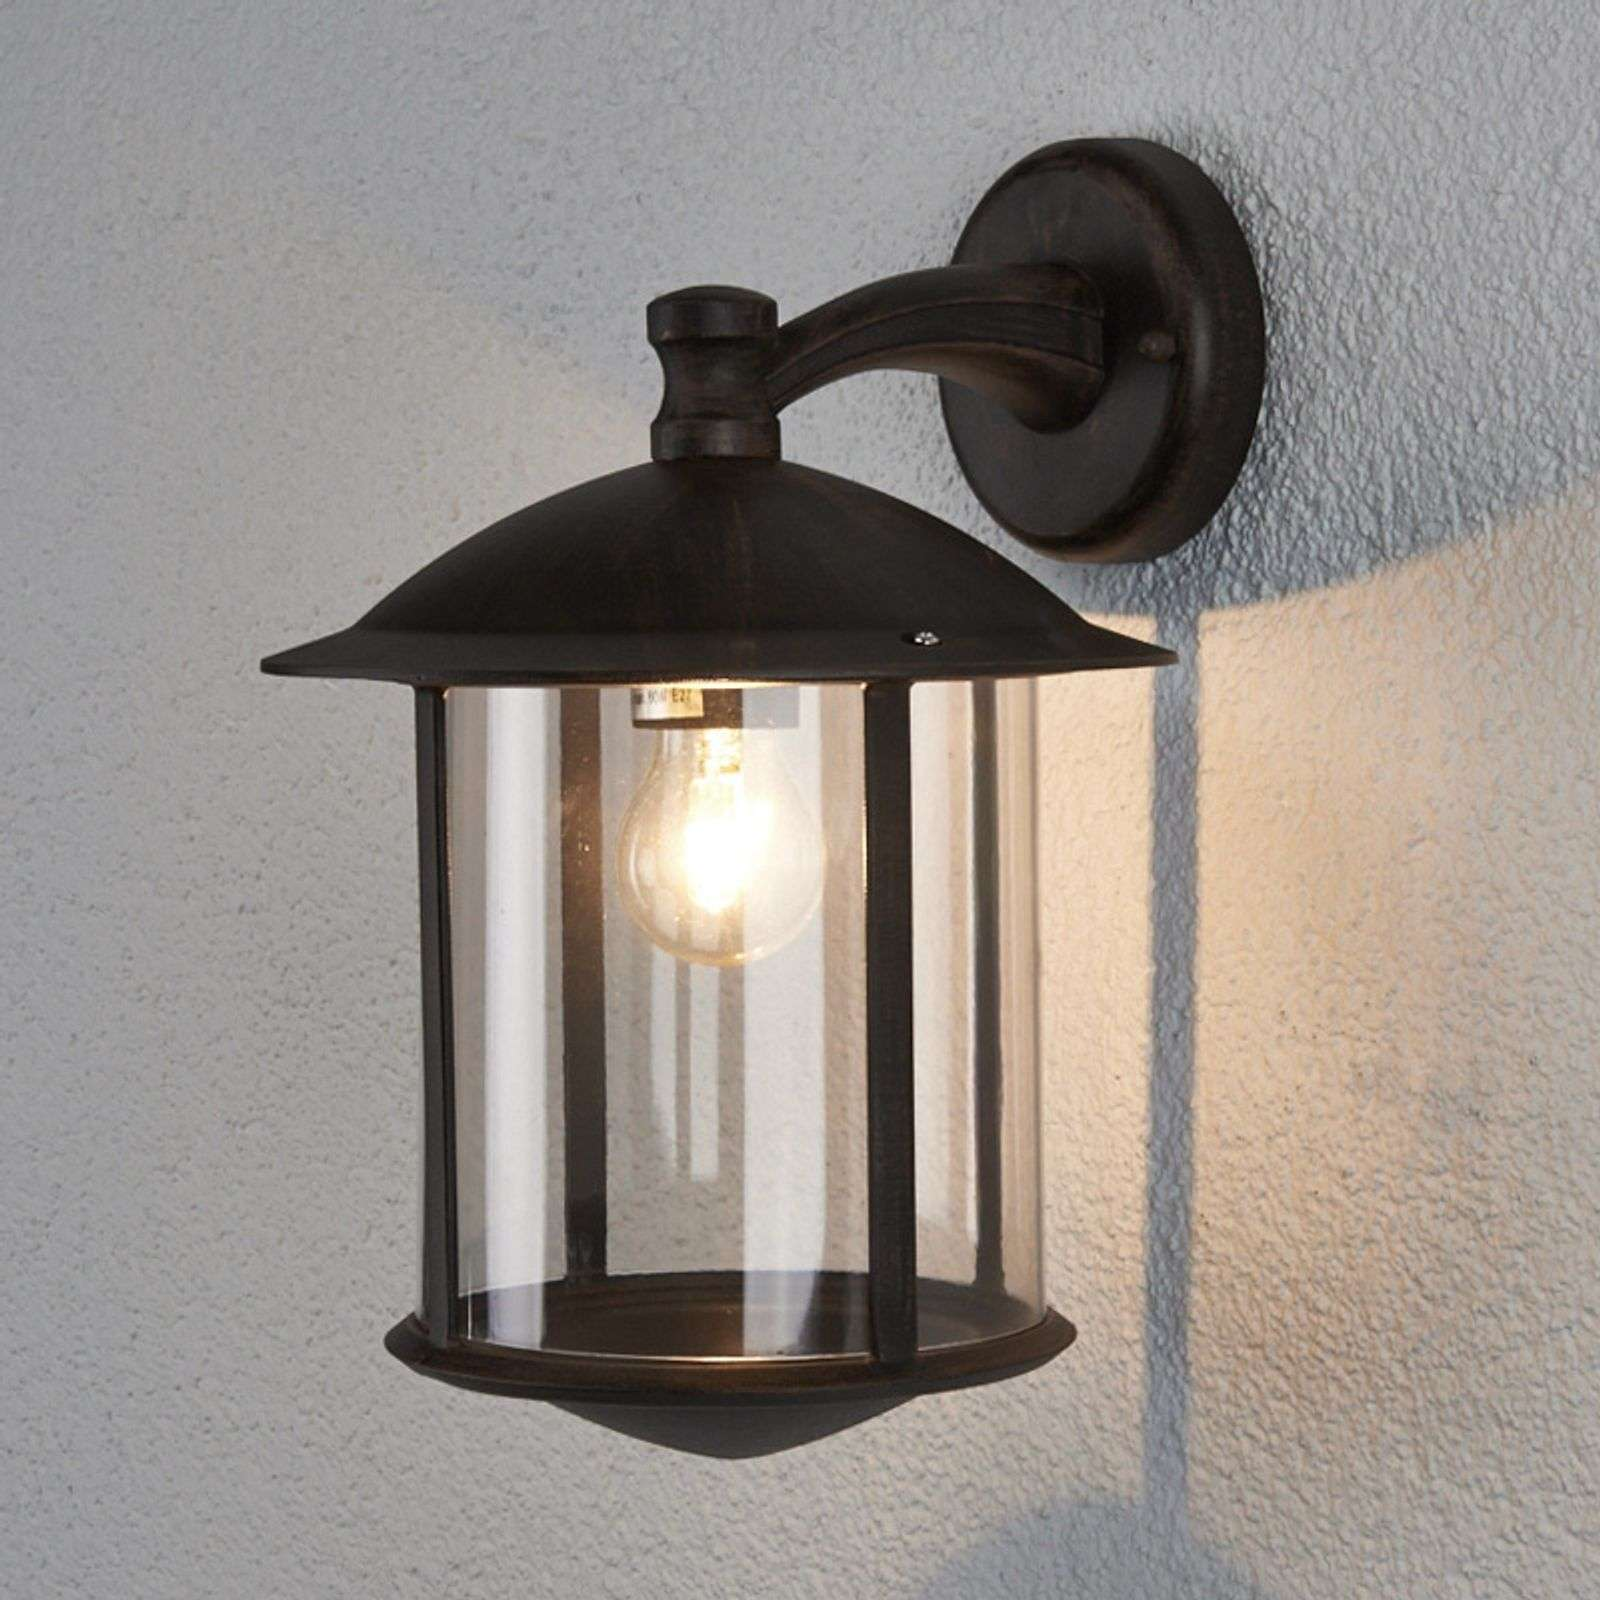 Maelis - outdoor wandlamp in roest optica